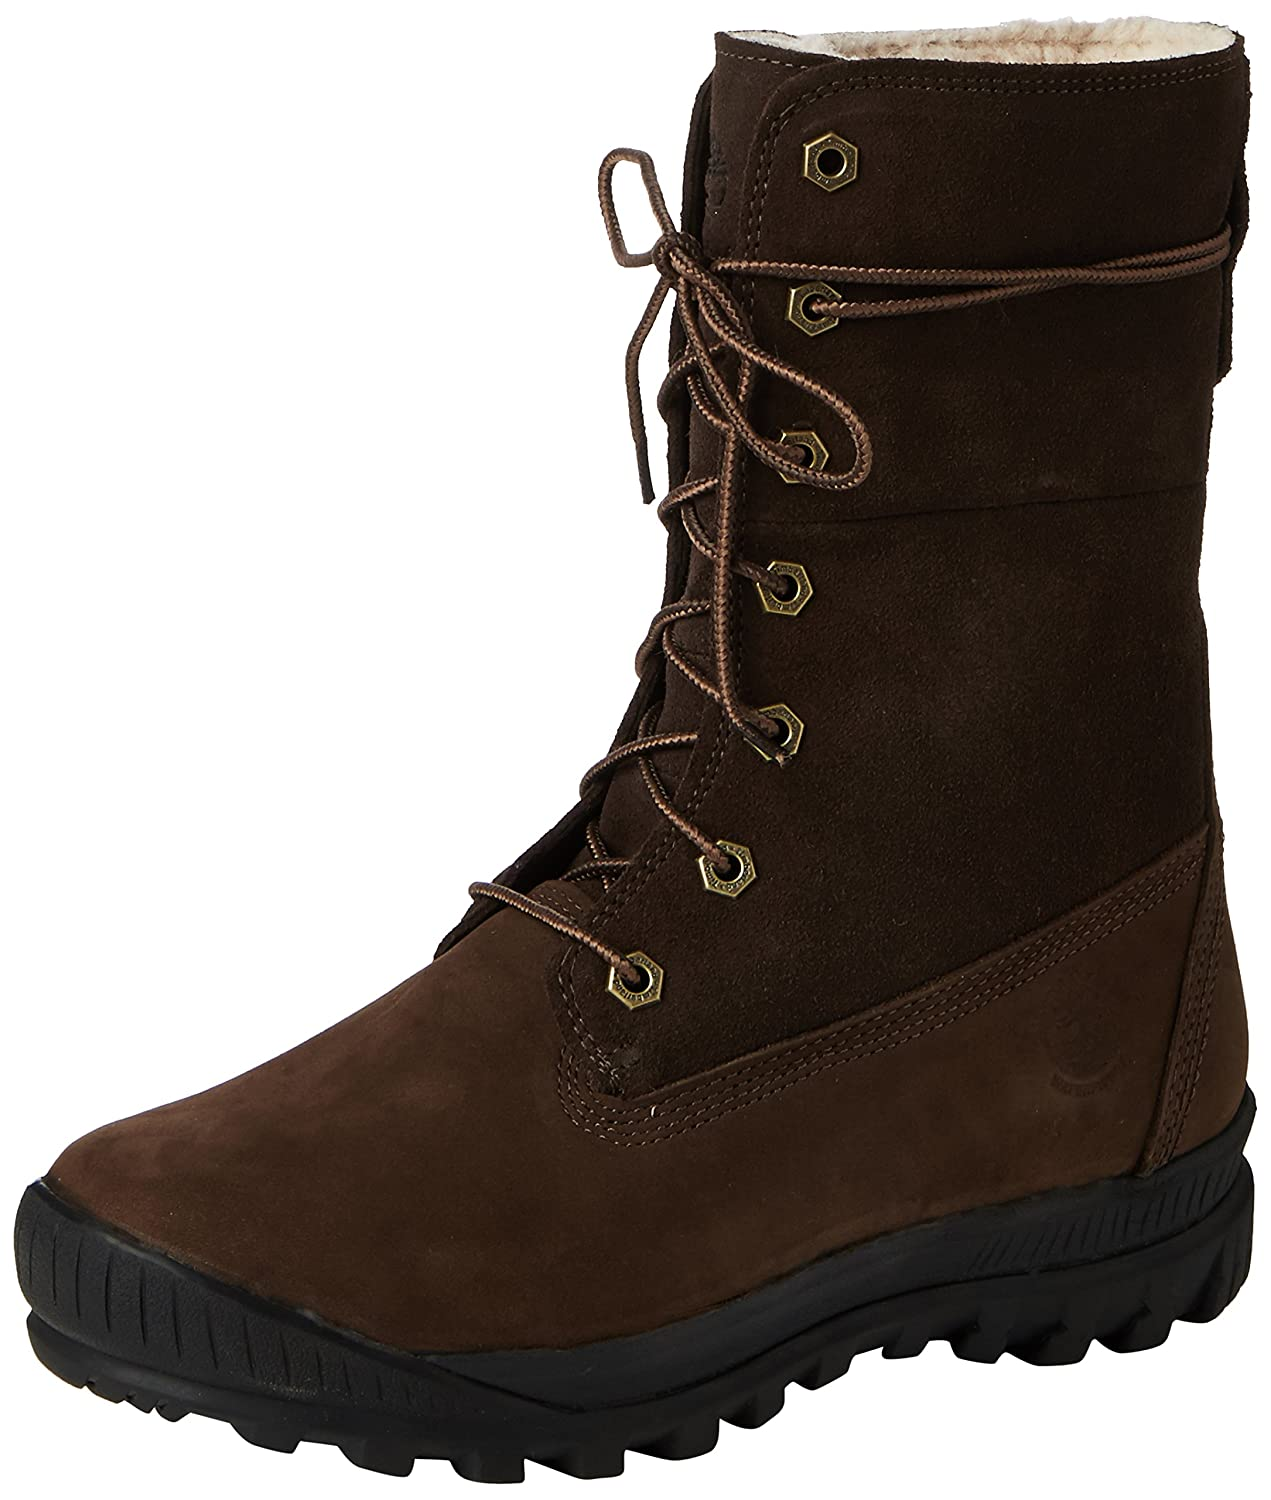 6219f315584 Timberland Women's Woodhaven Roll Down Boot Brown 9.5